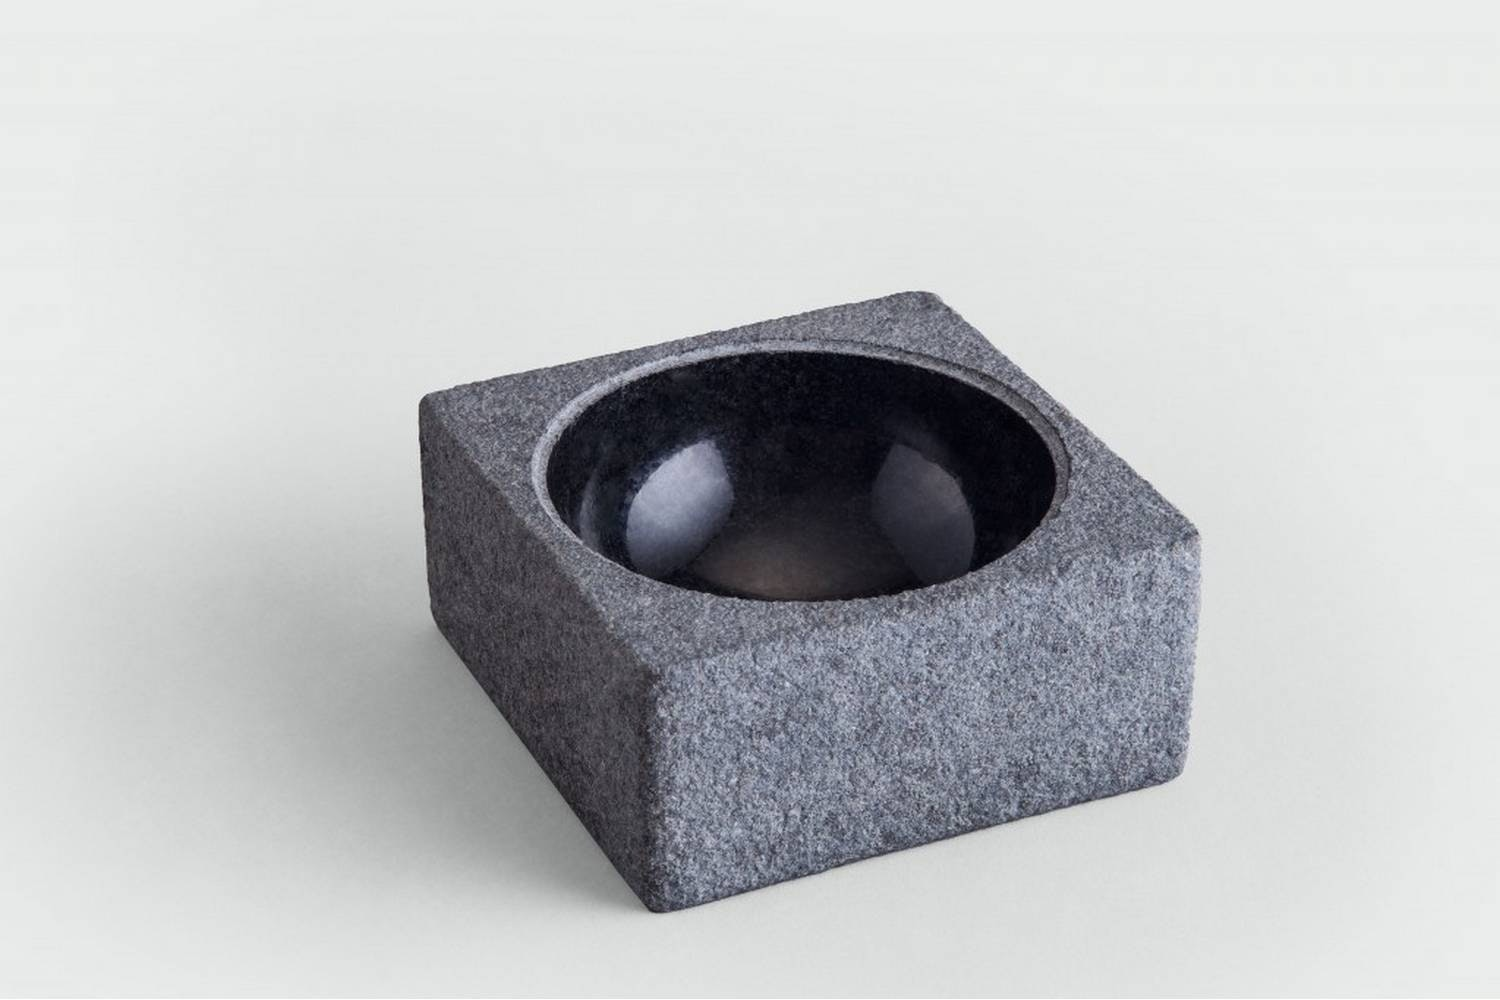 PK-Bowl by Poul Kjaerholm for Architectmade